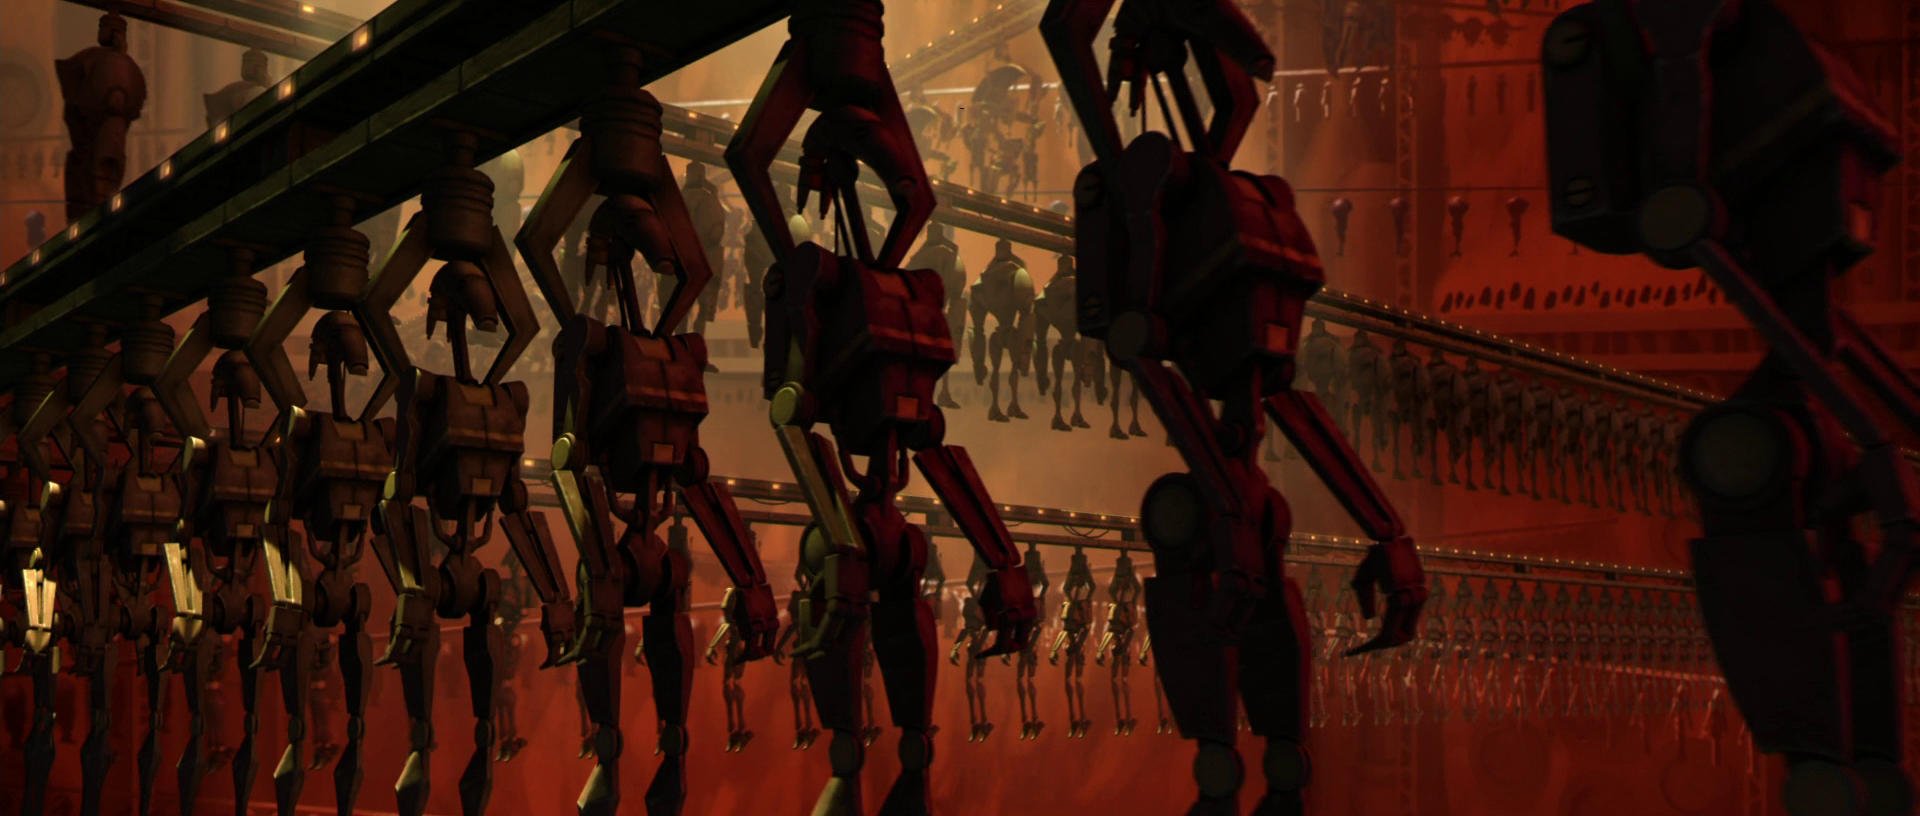 Geonosis primary droid foundry